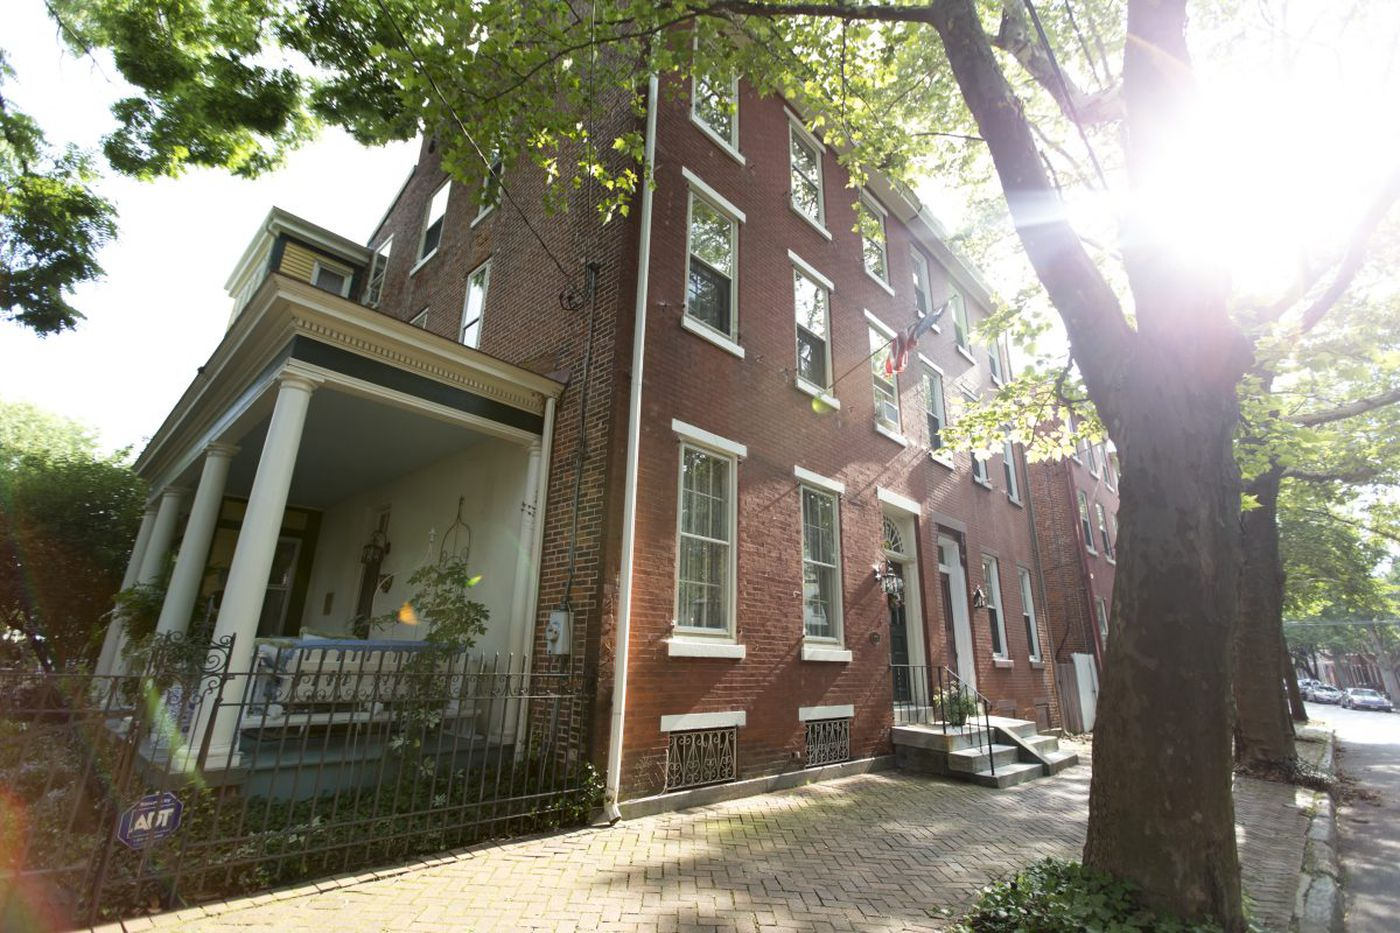 Determined lawyer gives new life to Burlington City home